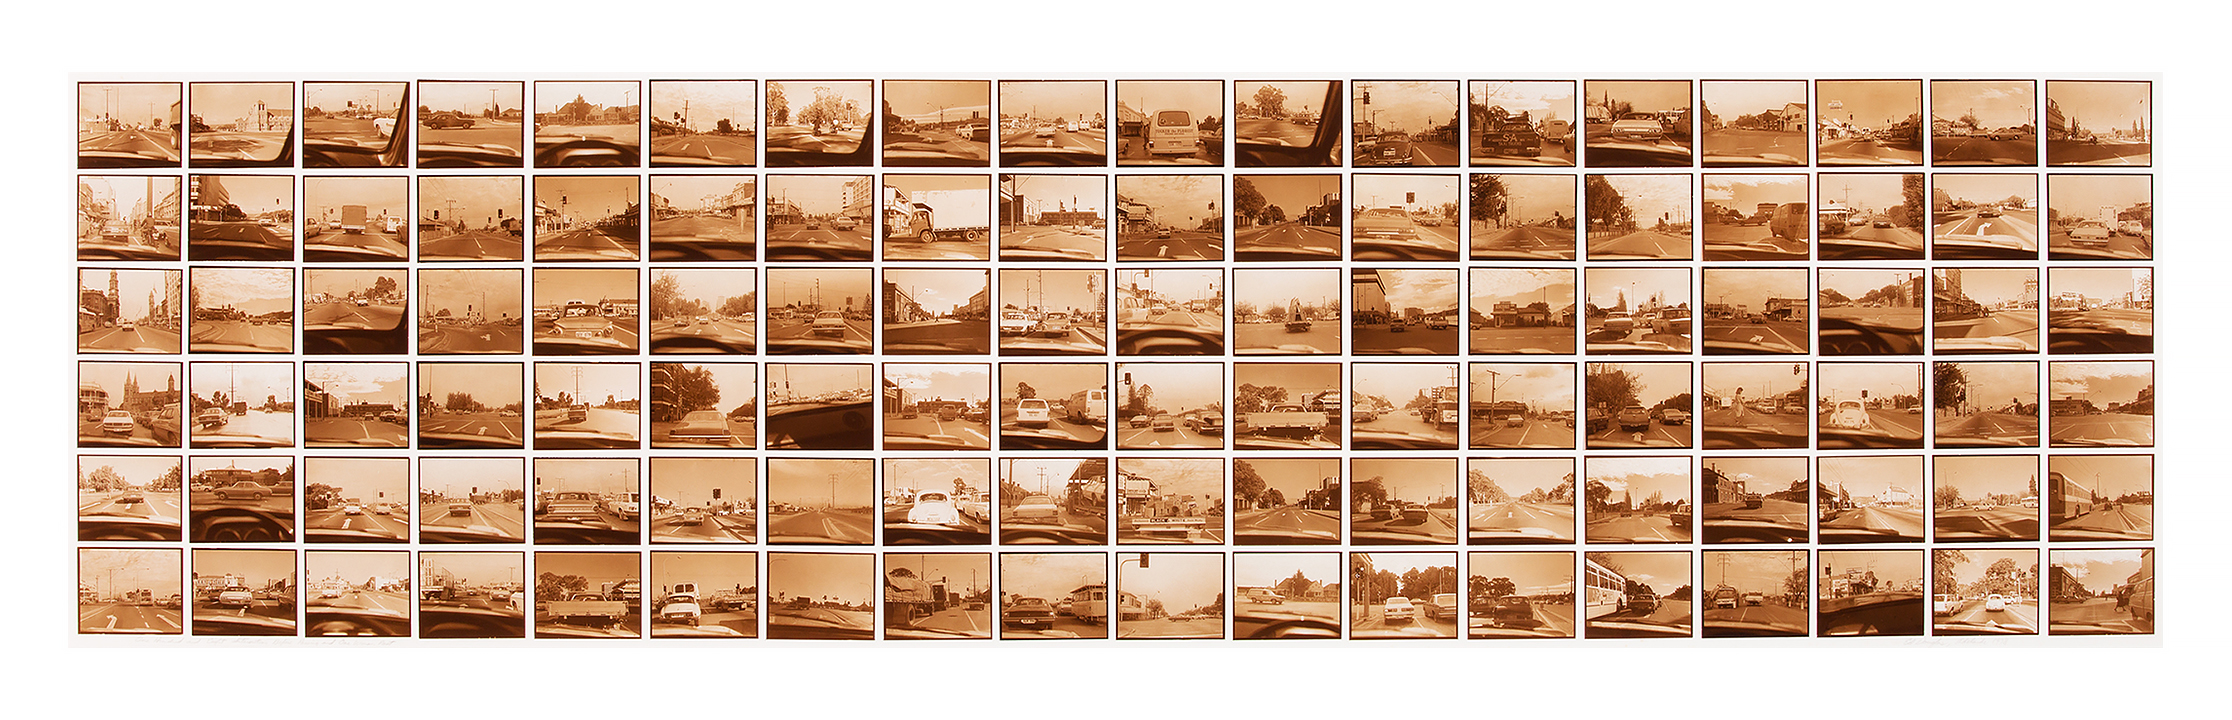 108 Intersections  1978 108 gelatin silver prints (POP) 36.5cm x 139.5cm